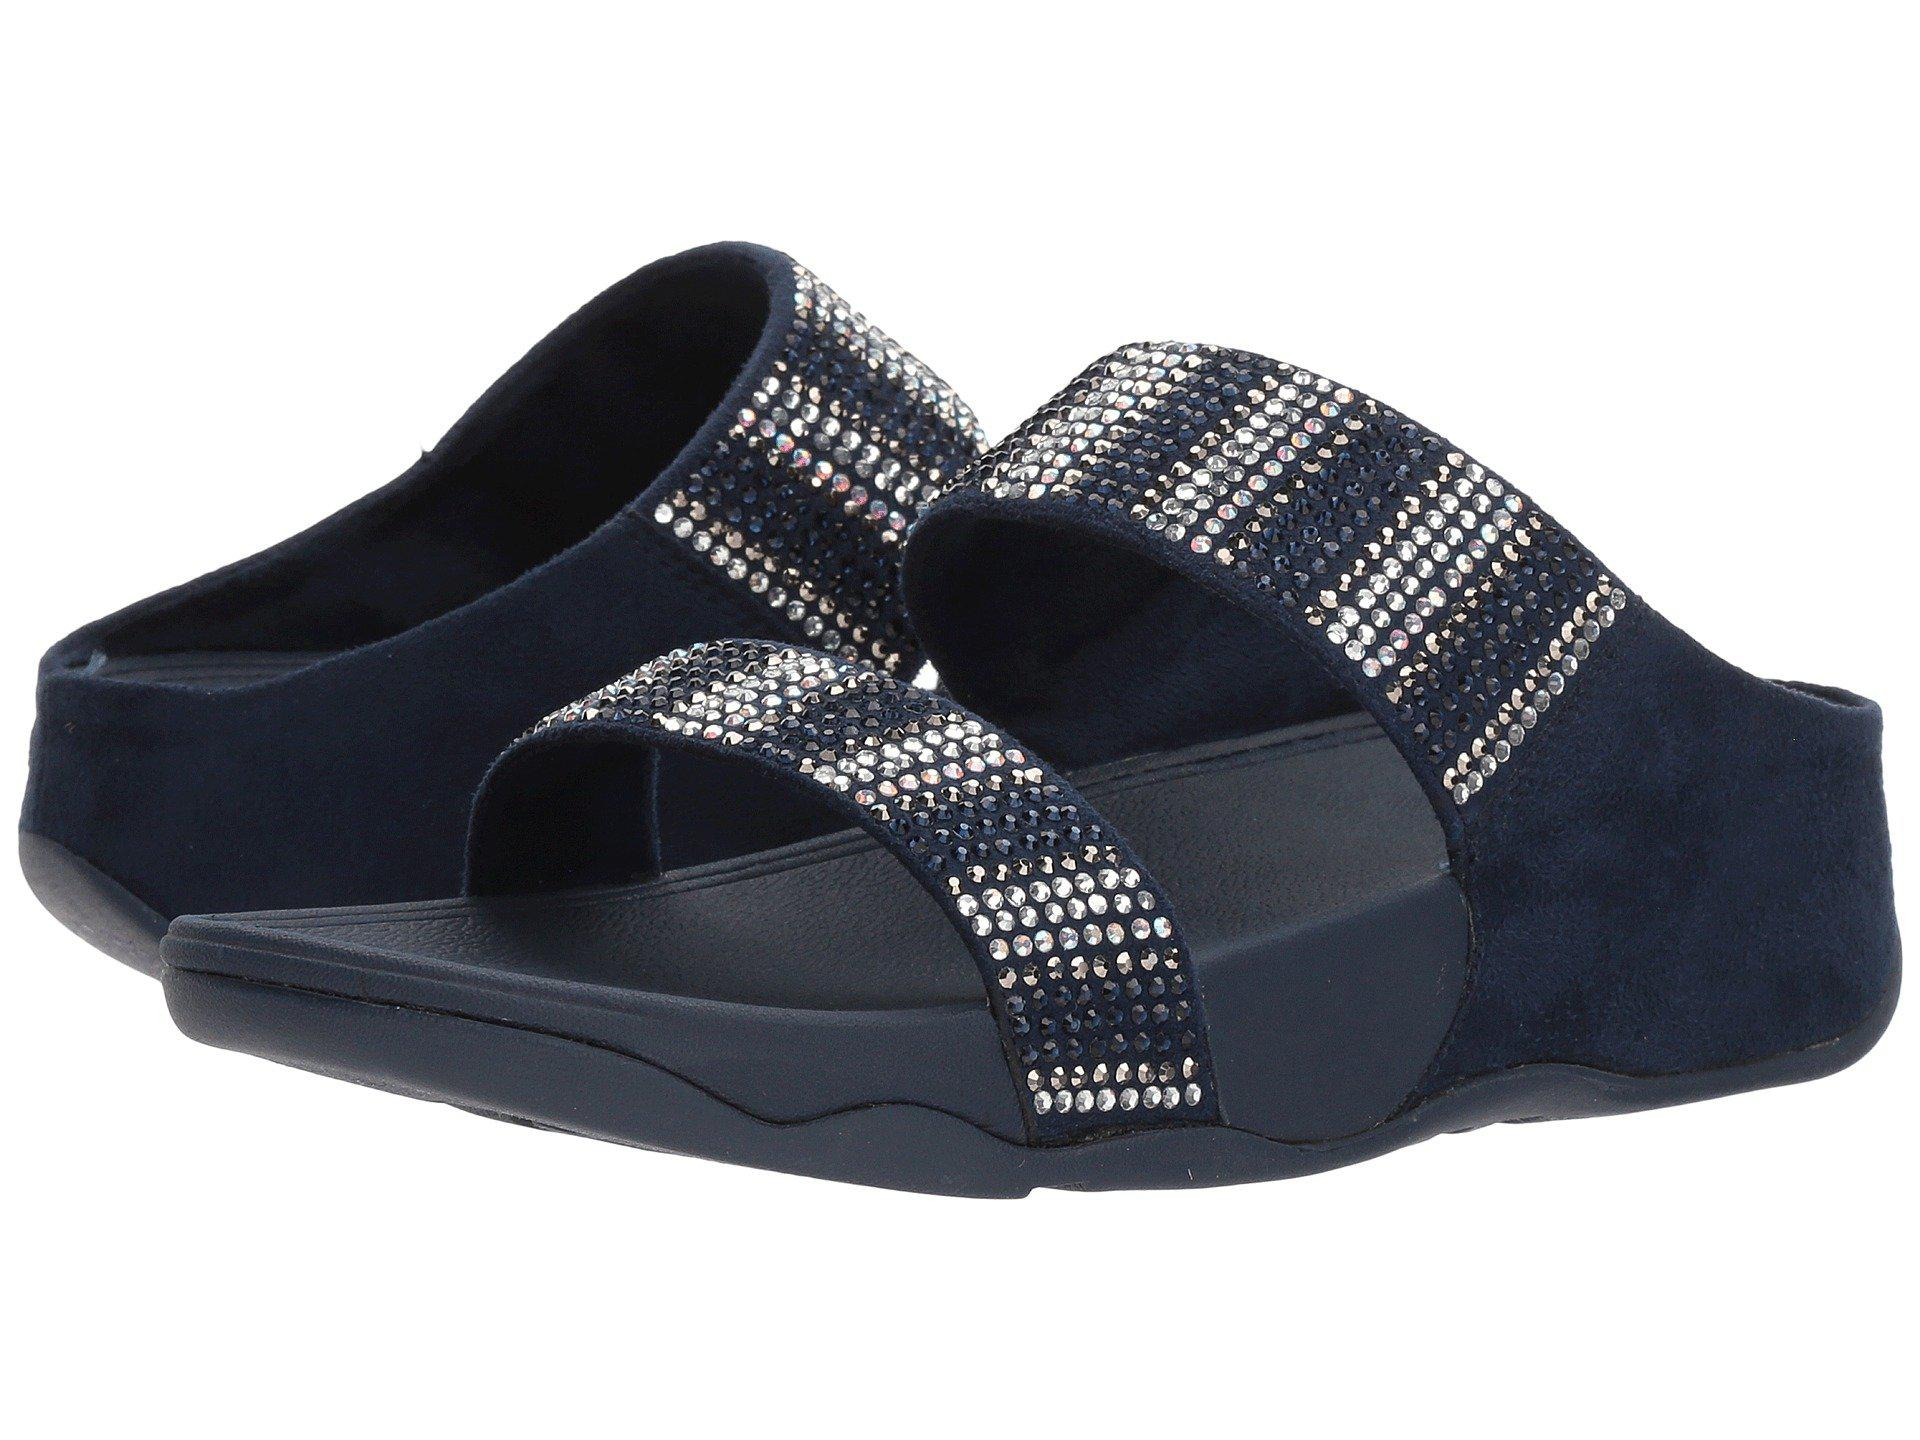 26ccd2a24915 Lyst - Fitflop Flare Strobe Slide in Blue - Save 66%